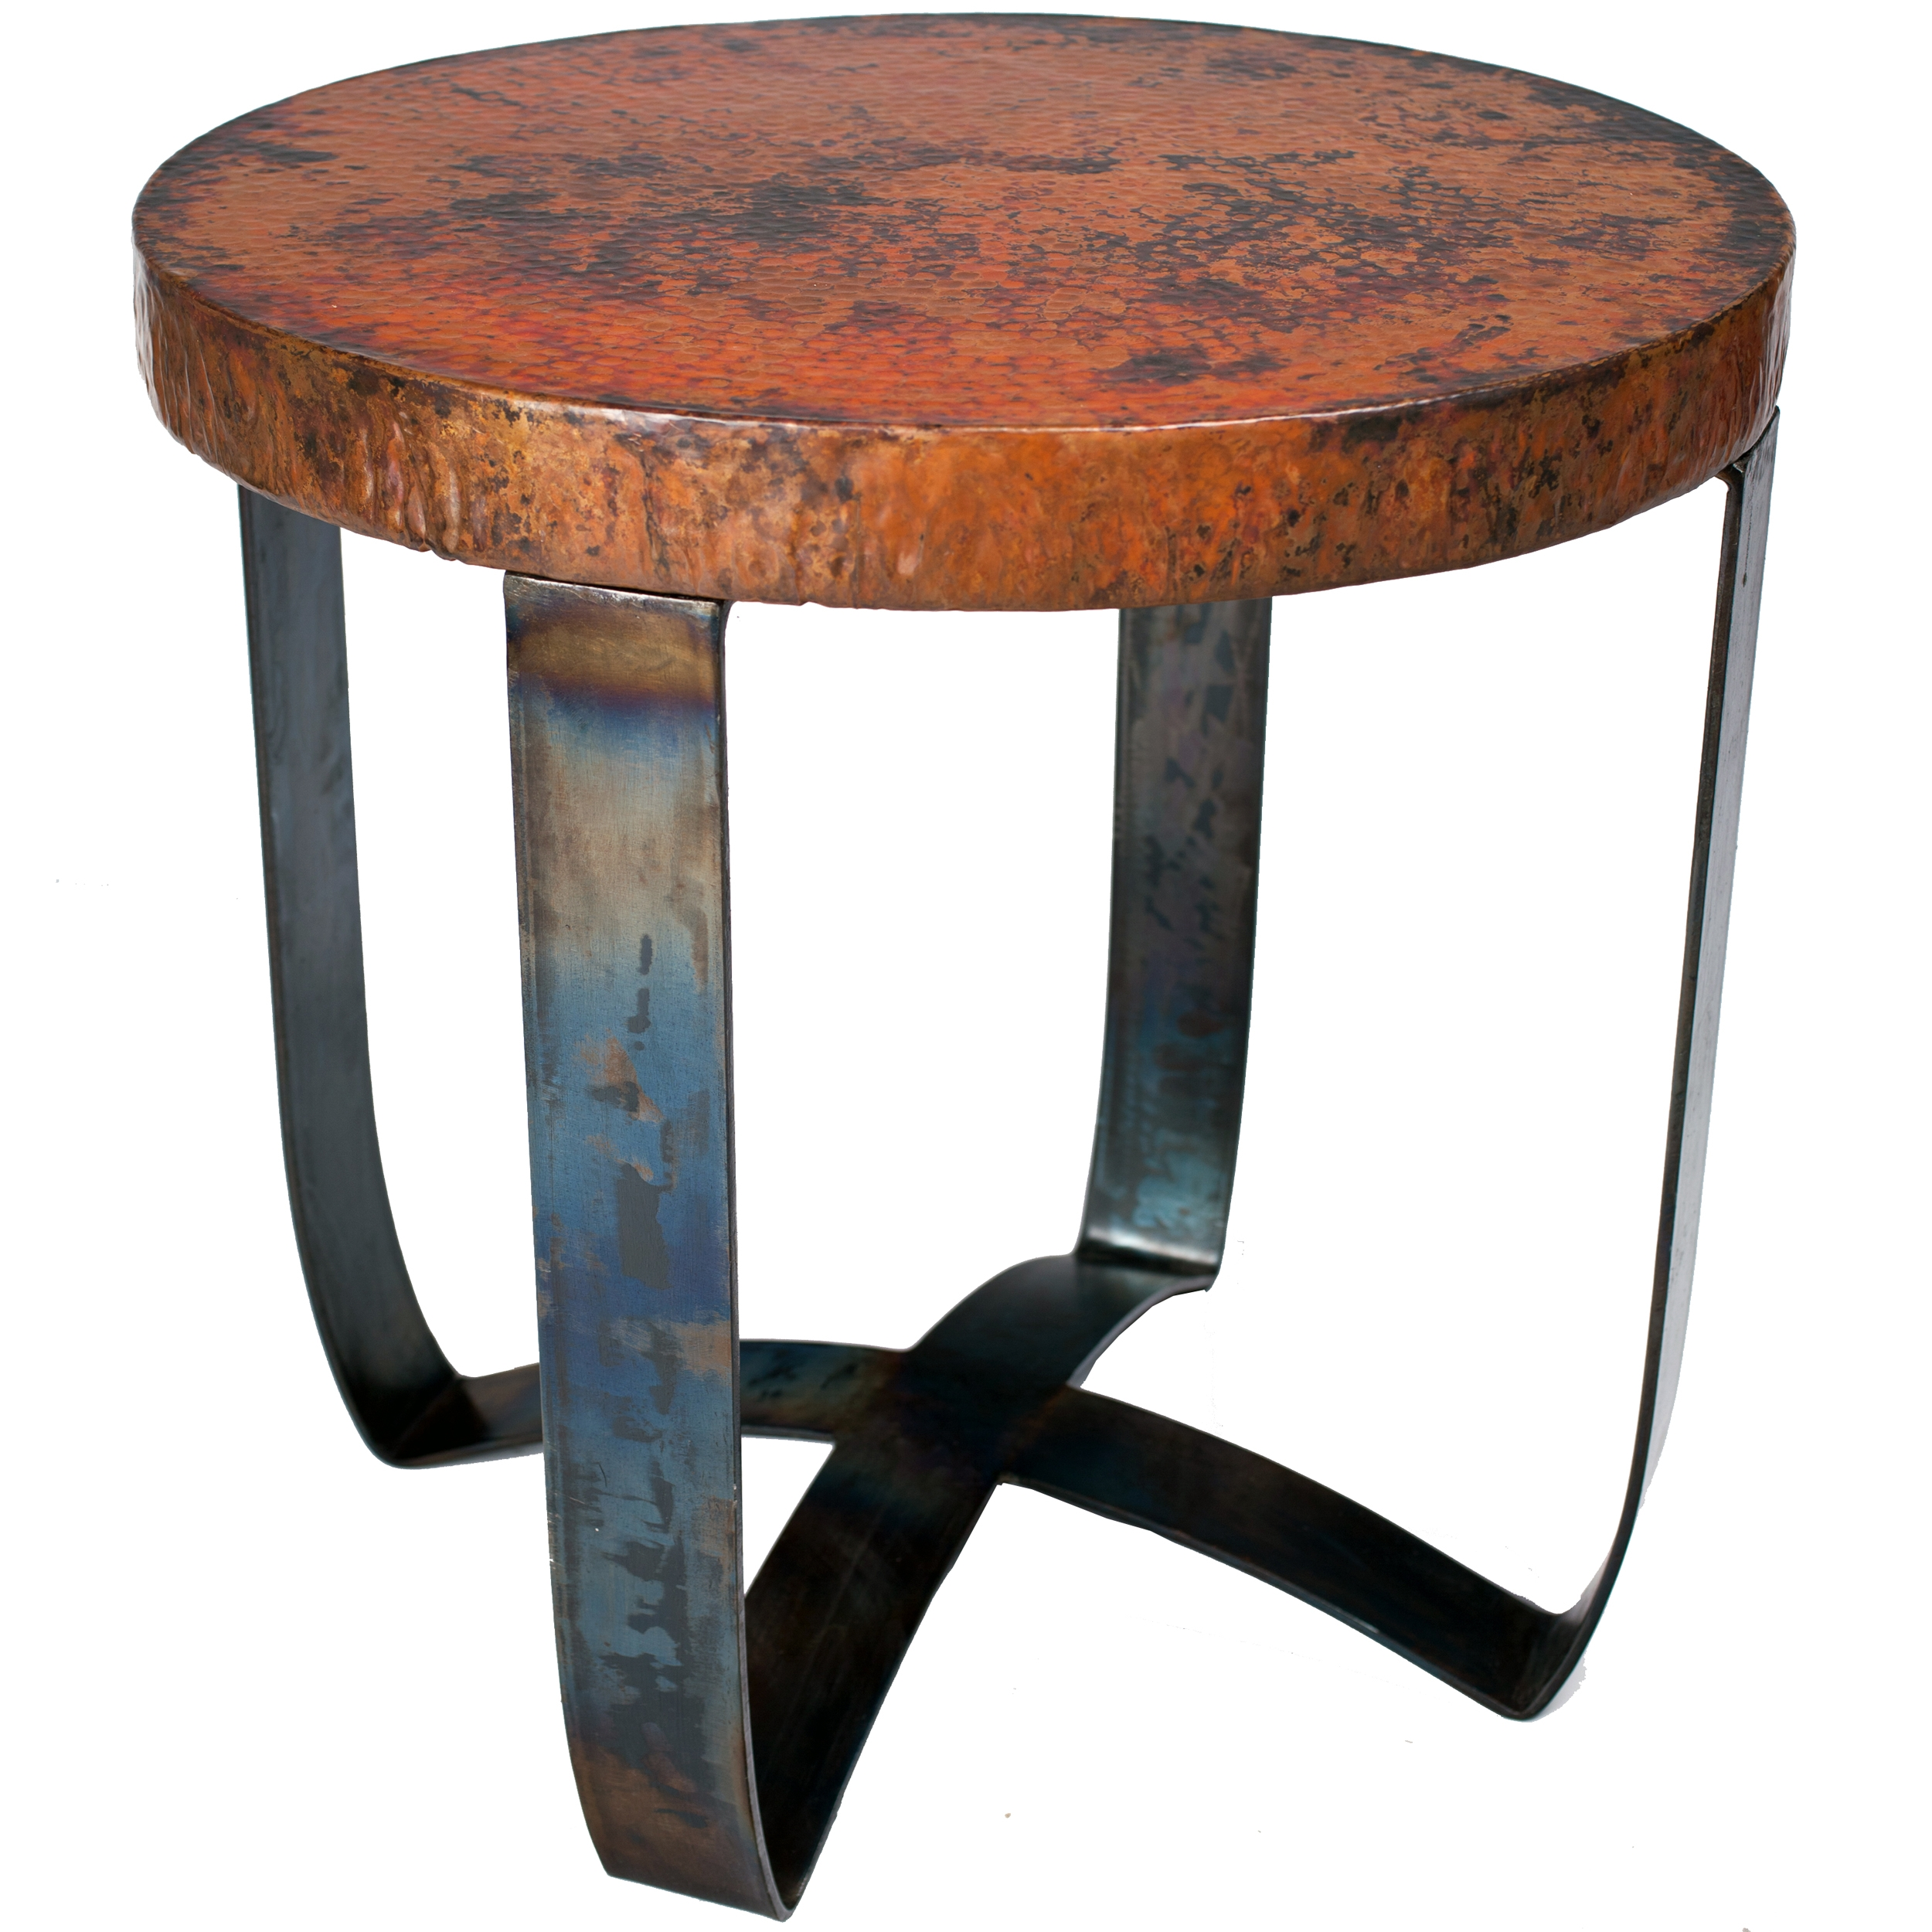 Pictured Here Is The Round Strap End Table With Wrought. Cabinet Drawer Knobs. Disney Princess Desk. Desk Top Back Grounds. Service Desk Show. Stickley Desk Prices. Diamond Drawer Pulls. Amazon Office Desk. Rent Table